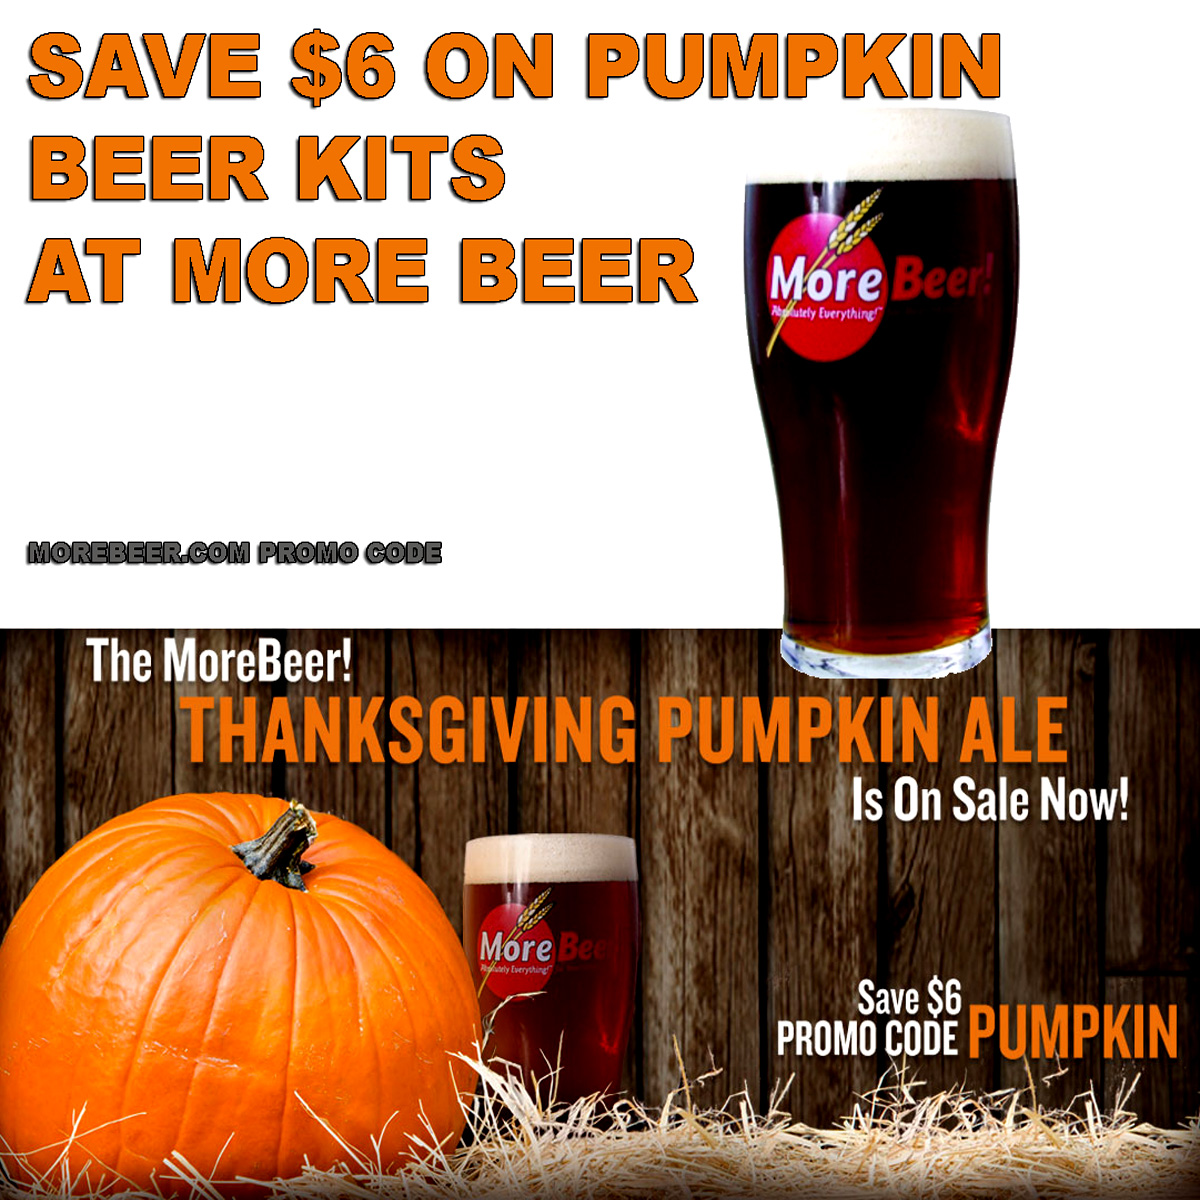 MoreBeer Save $6 On A Pumpkin Ale Beer Recipe Kit at MoreBeer.com with Promo Code PUMPKIN. This MoreBeer coupon code is good for both all grain and extract beer brewing kits. Coupon Code